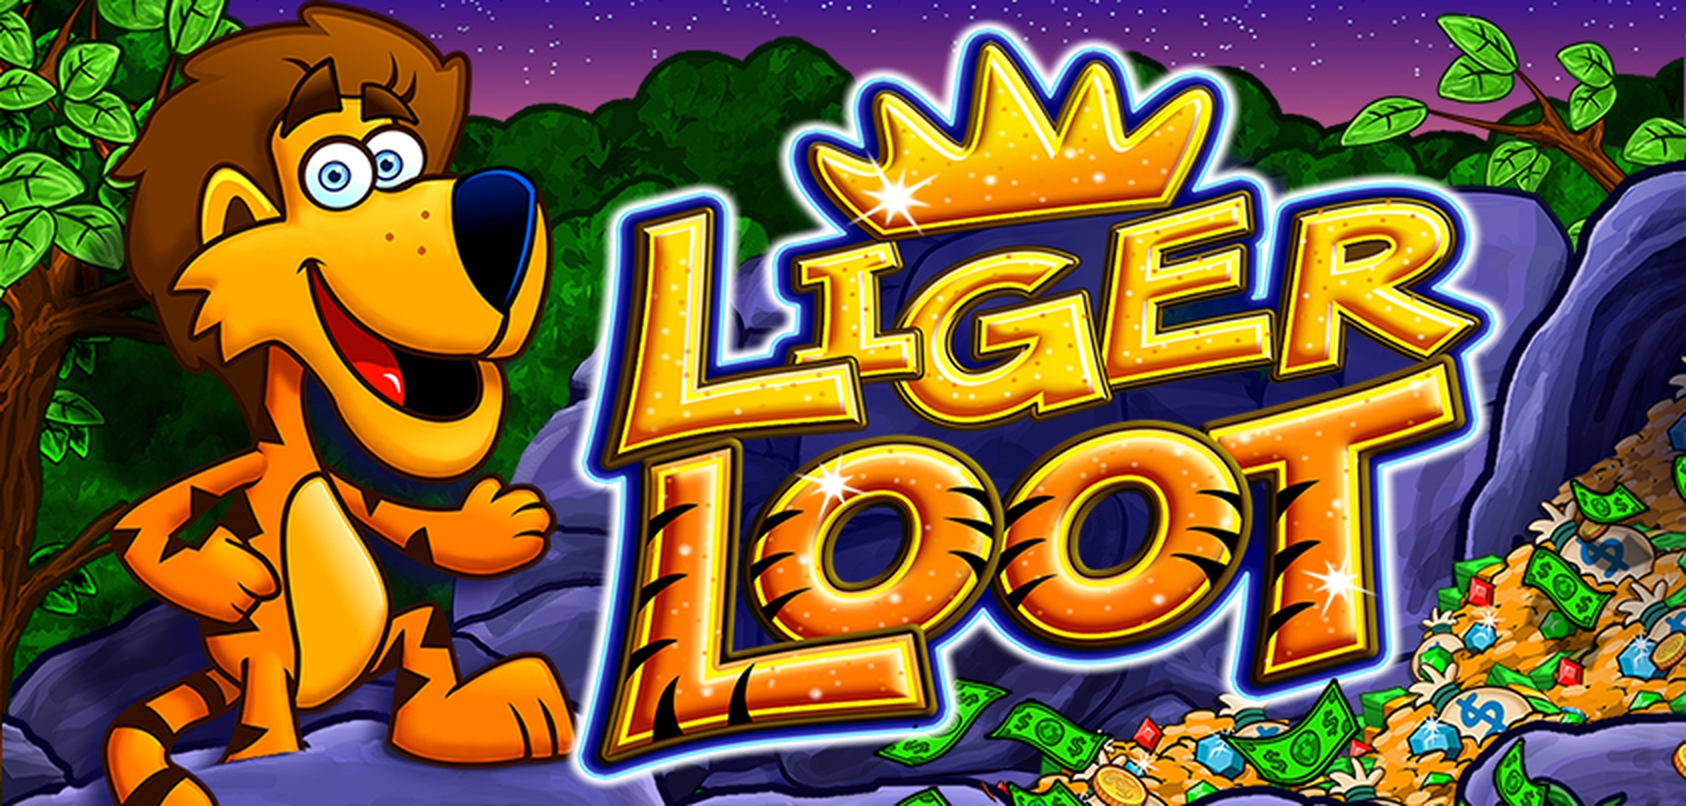 The Liger Loot Online Slot Demo Game by High 5 Games